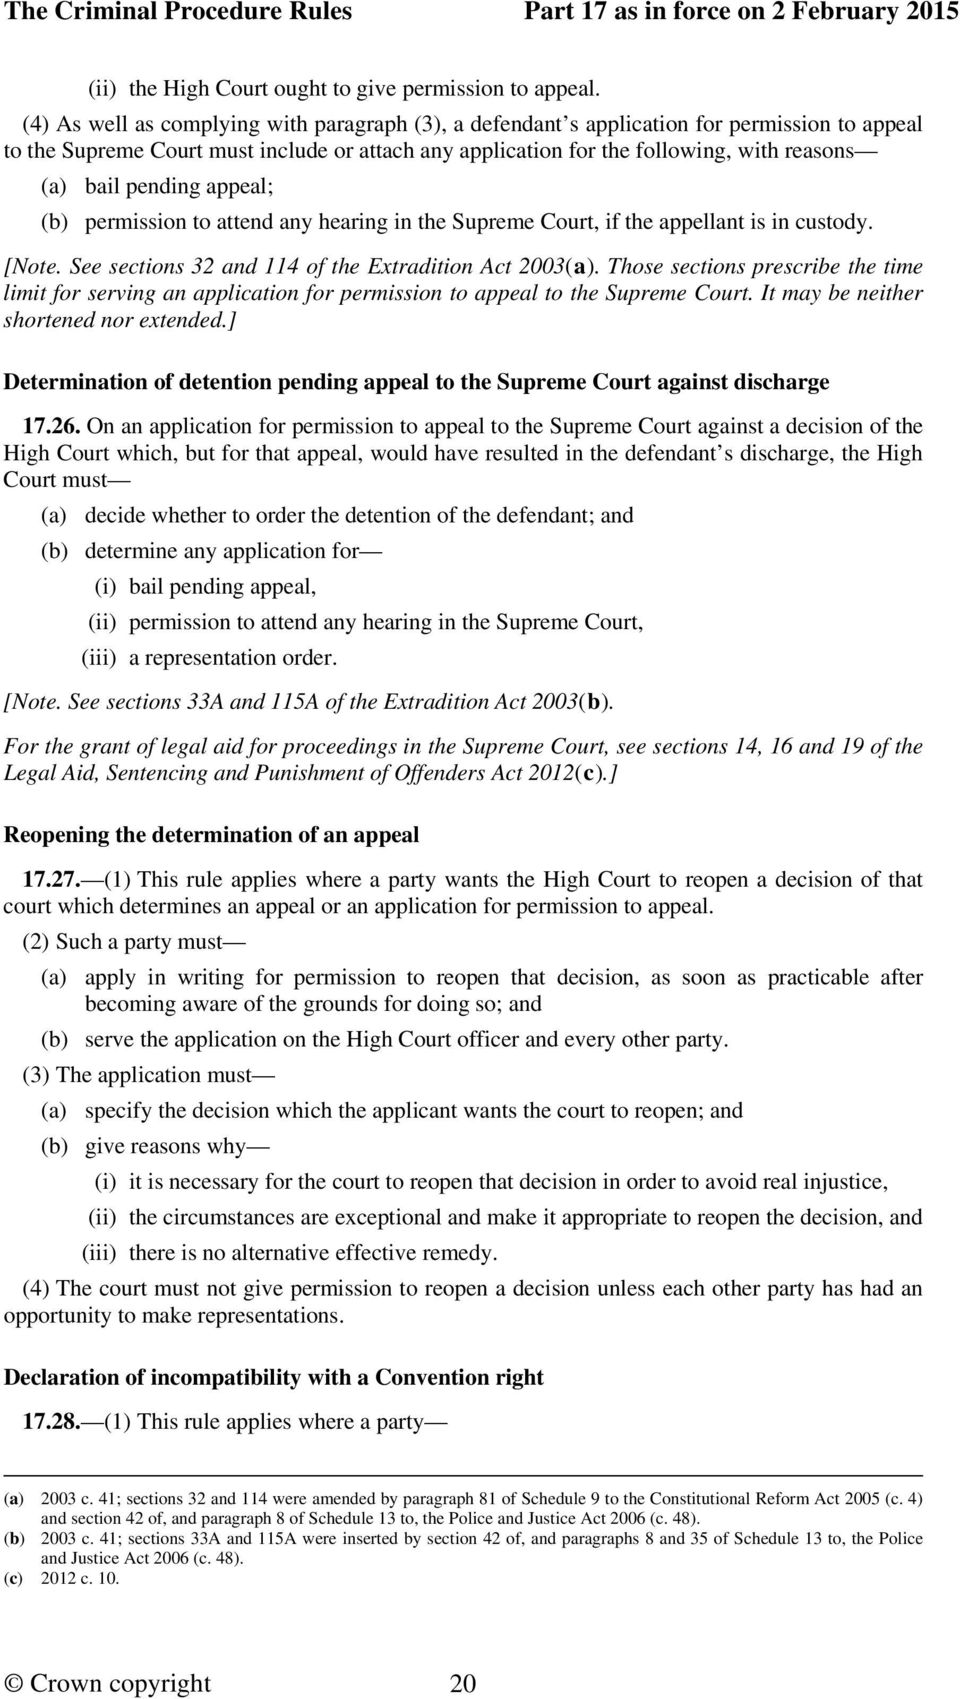 pending appeal; (b) permission to attend any hearing in the Supreme Court, if the appellant is in custody. [Note. See sections 32 and 114 of the Extradition Act 2003(a).